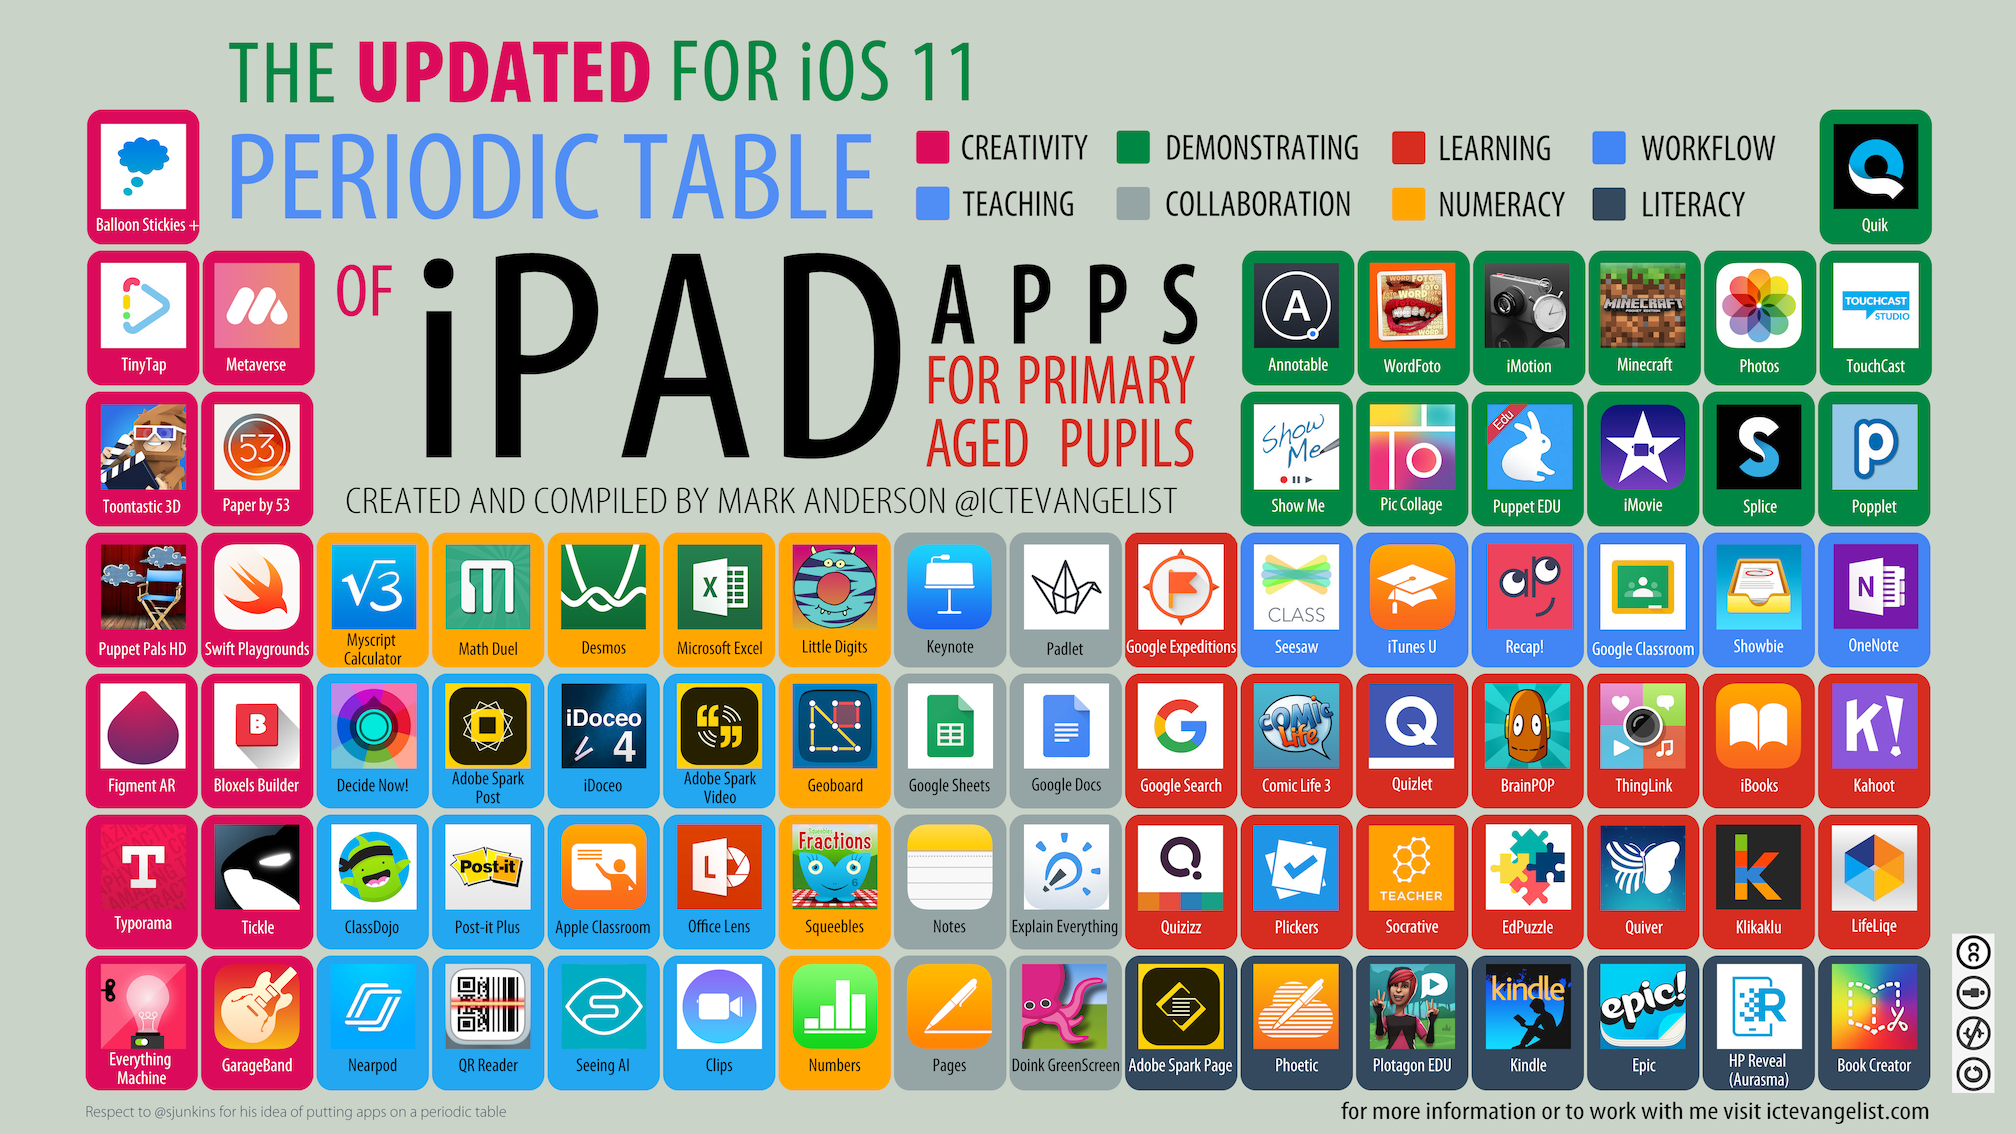 New And Updated Periodic Table Of Ipad Apps For Primary Aged Pupils